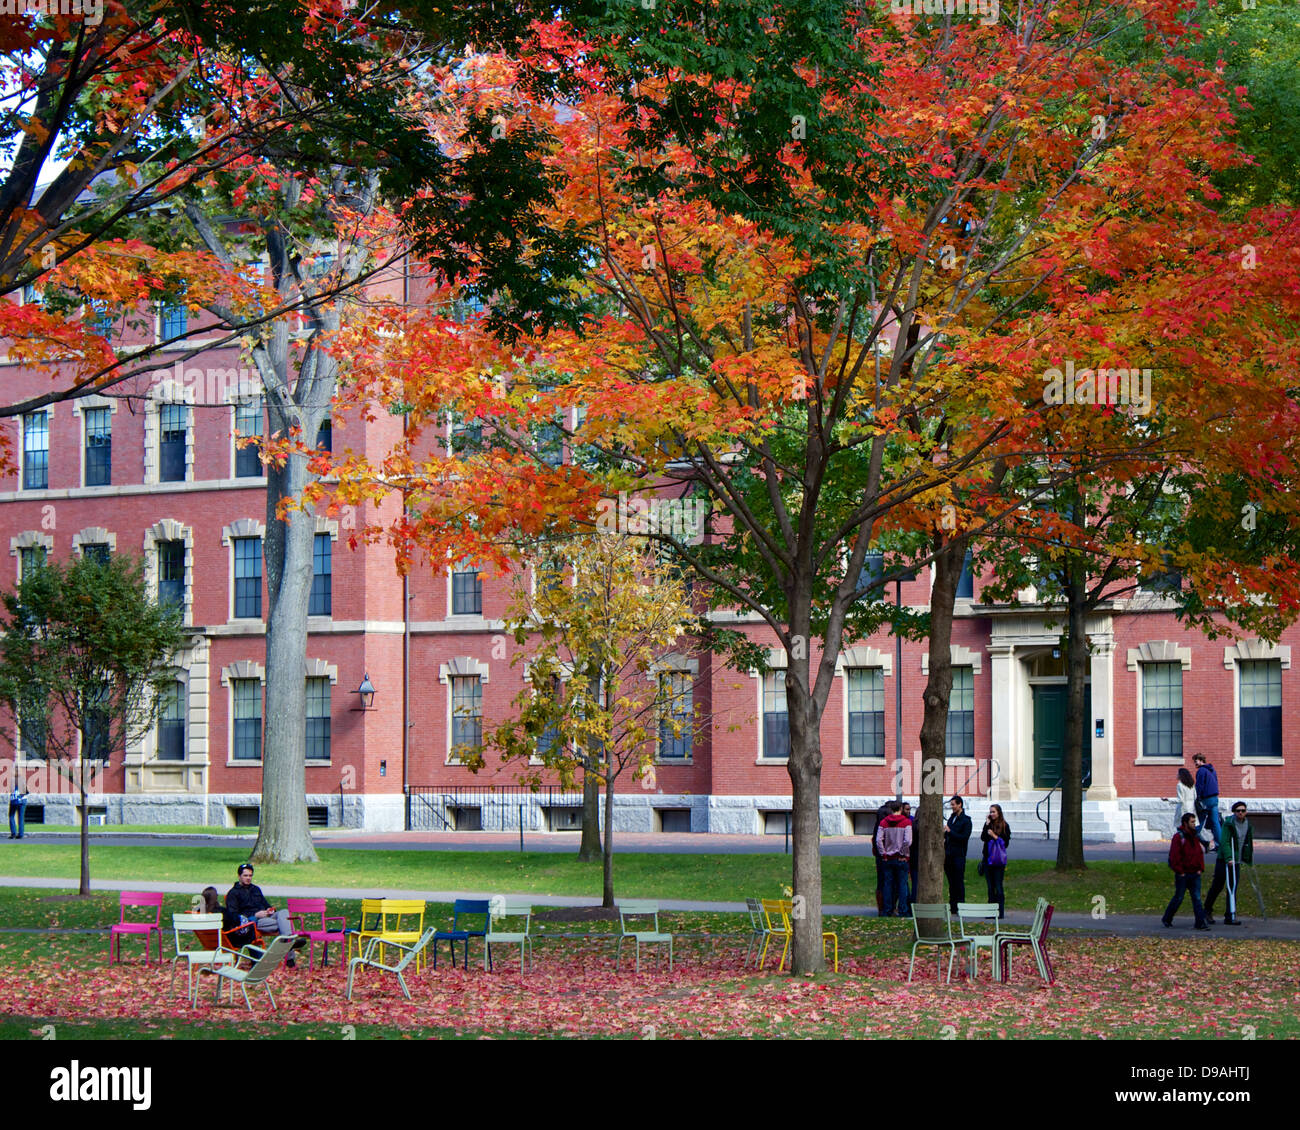 Colorful fall foliage in Harvard Yard, the old heart of the campus of Harvard University in Cambridge, MA, USA. Stock Photo